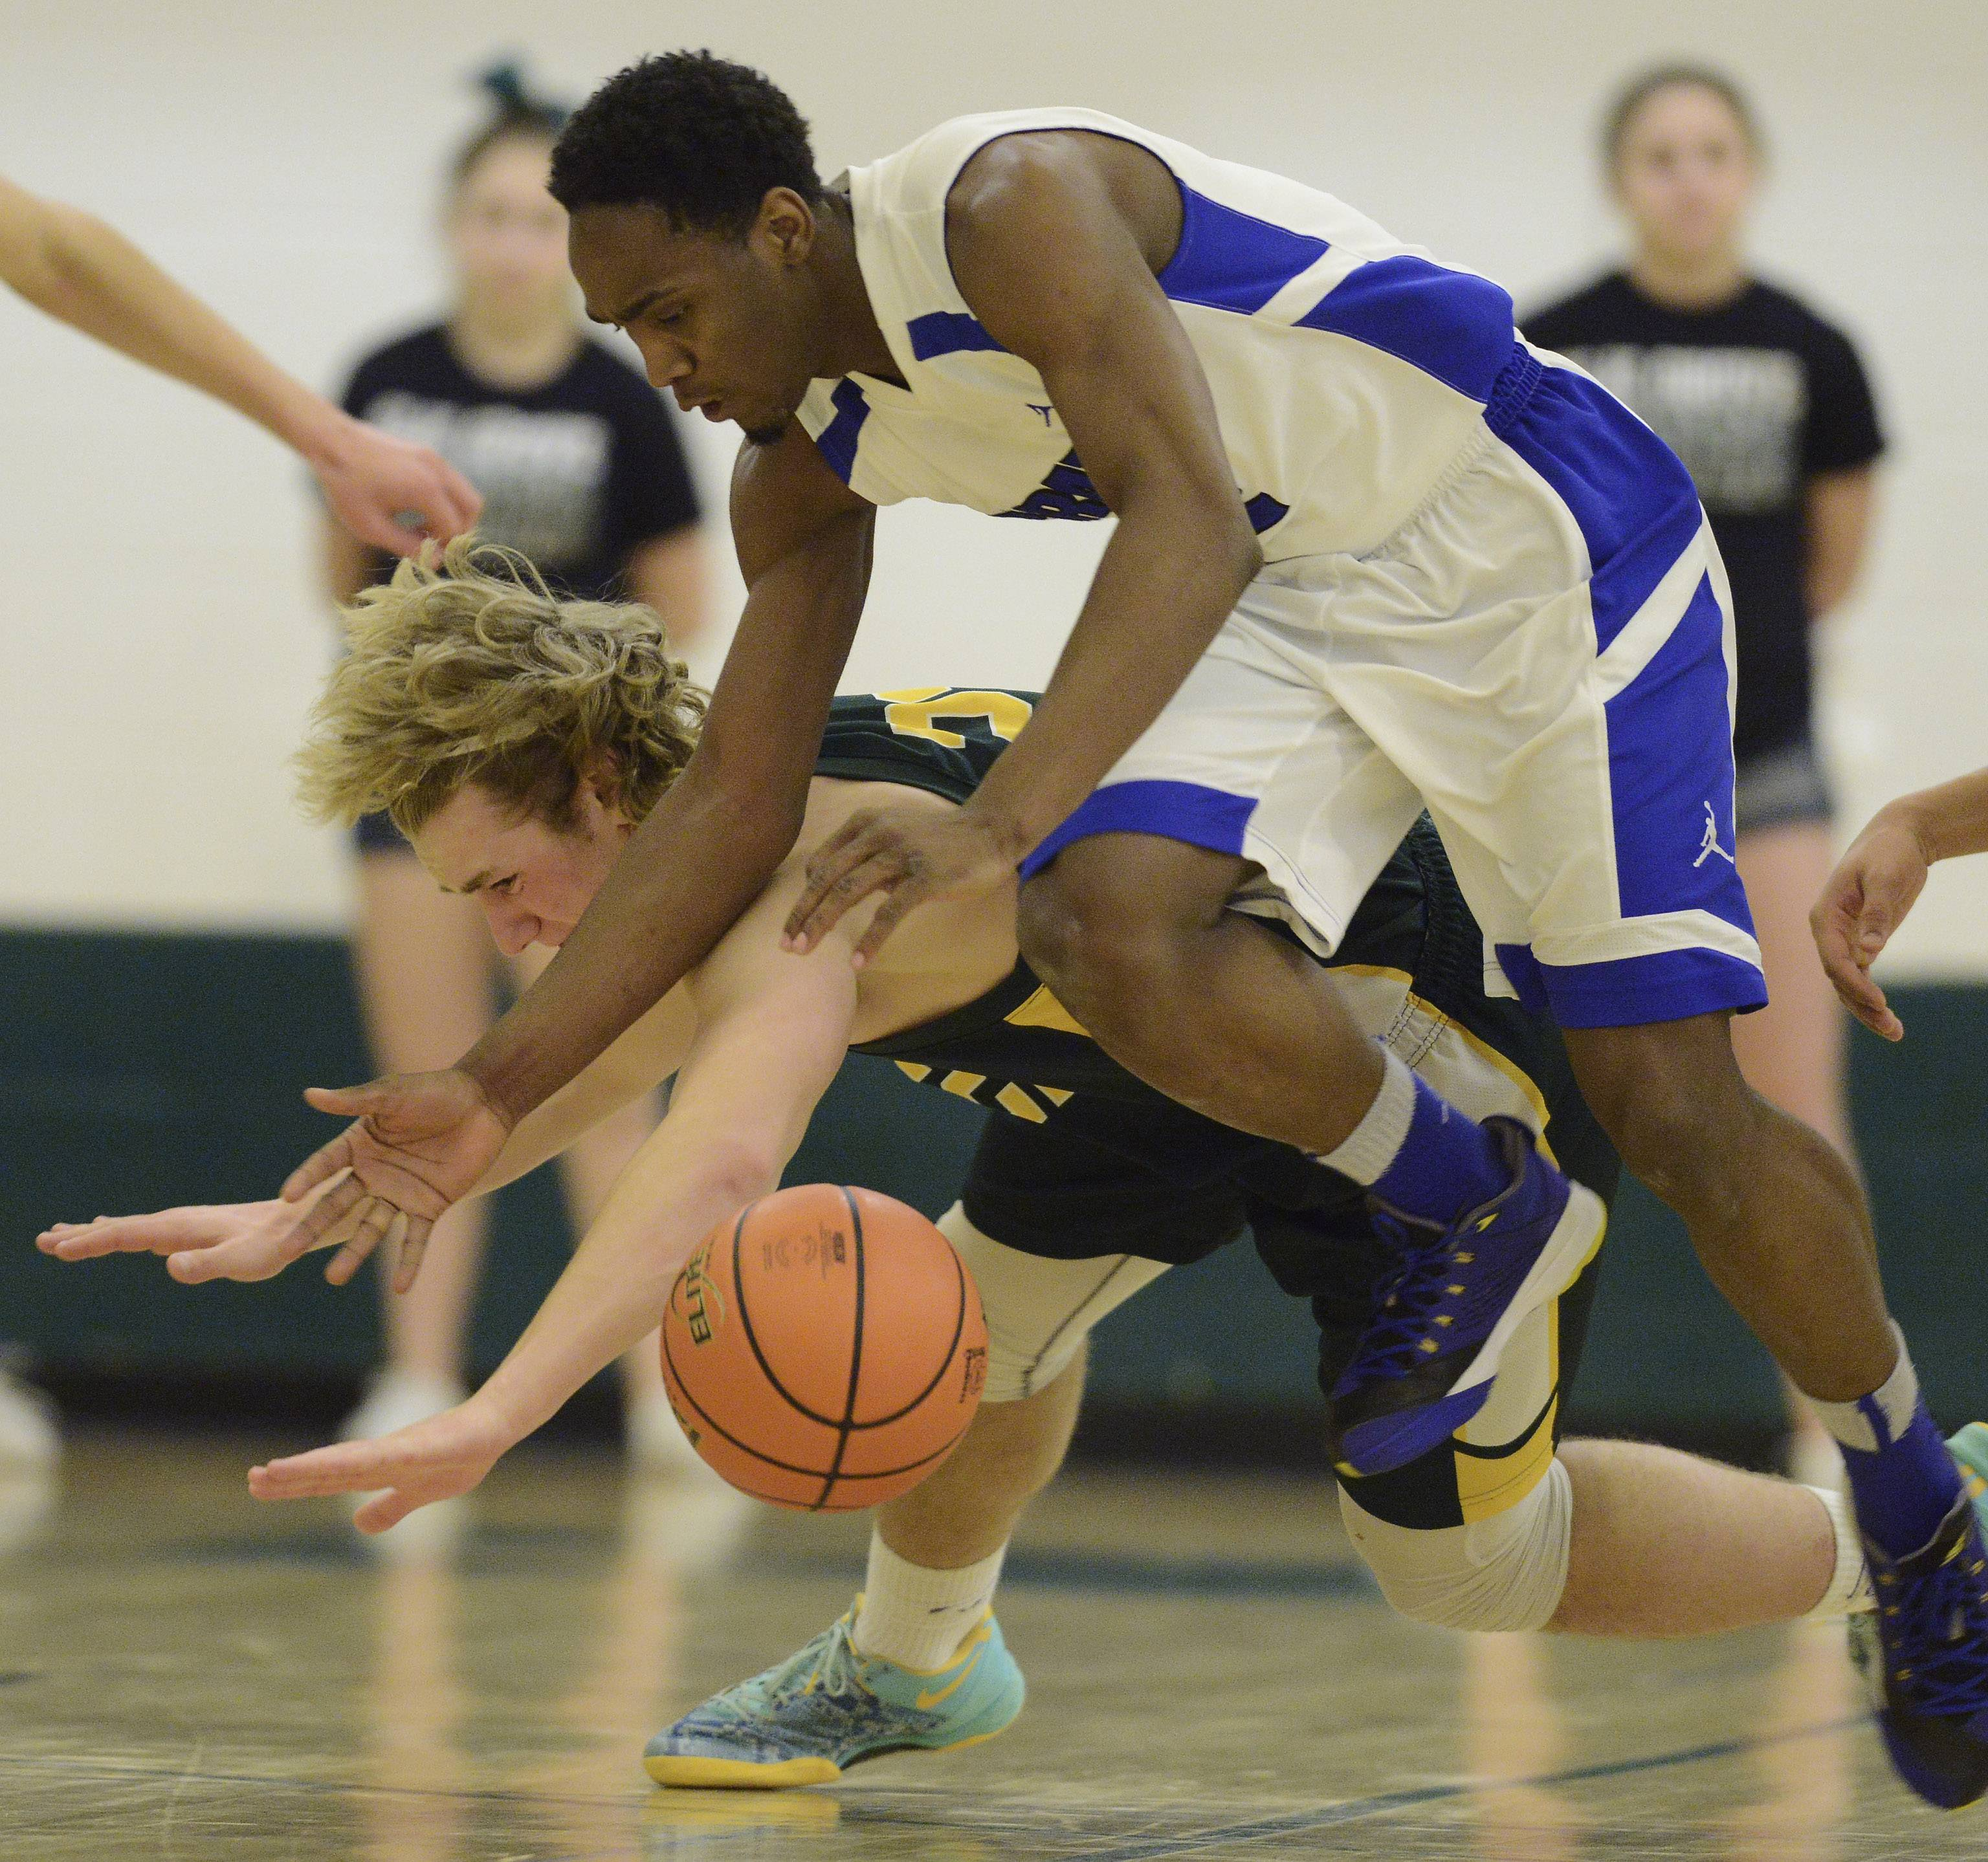 Elk Grove's Adam O'Malley, left, and Proviso East's Alano Span make contact while trying to control a loose ball during Tuesday's regional semifinal at Elk Grove.